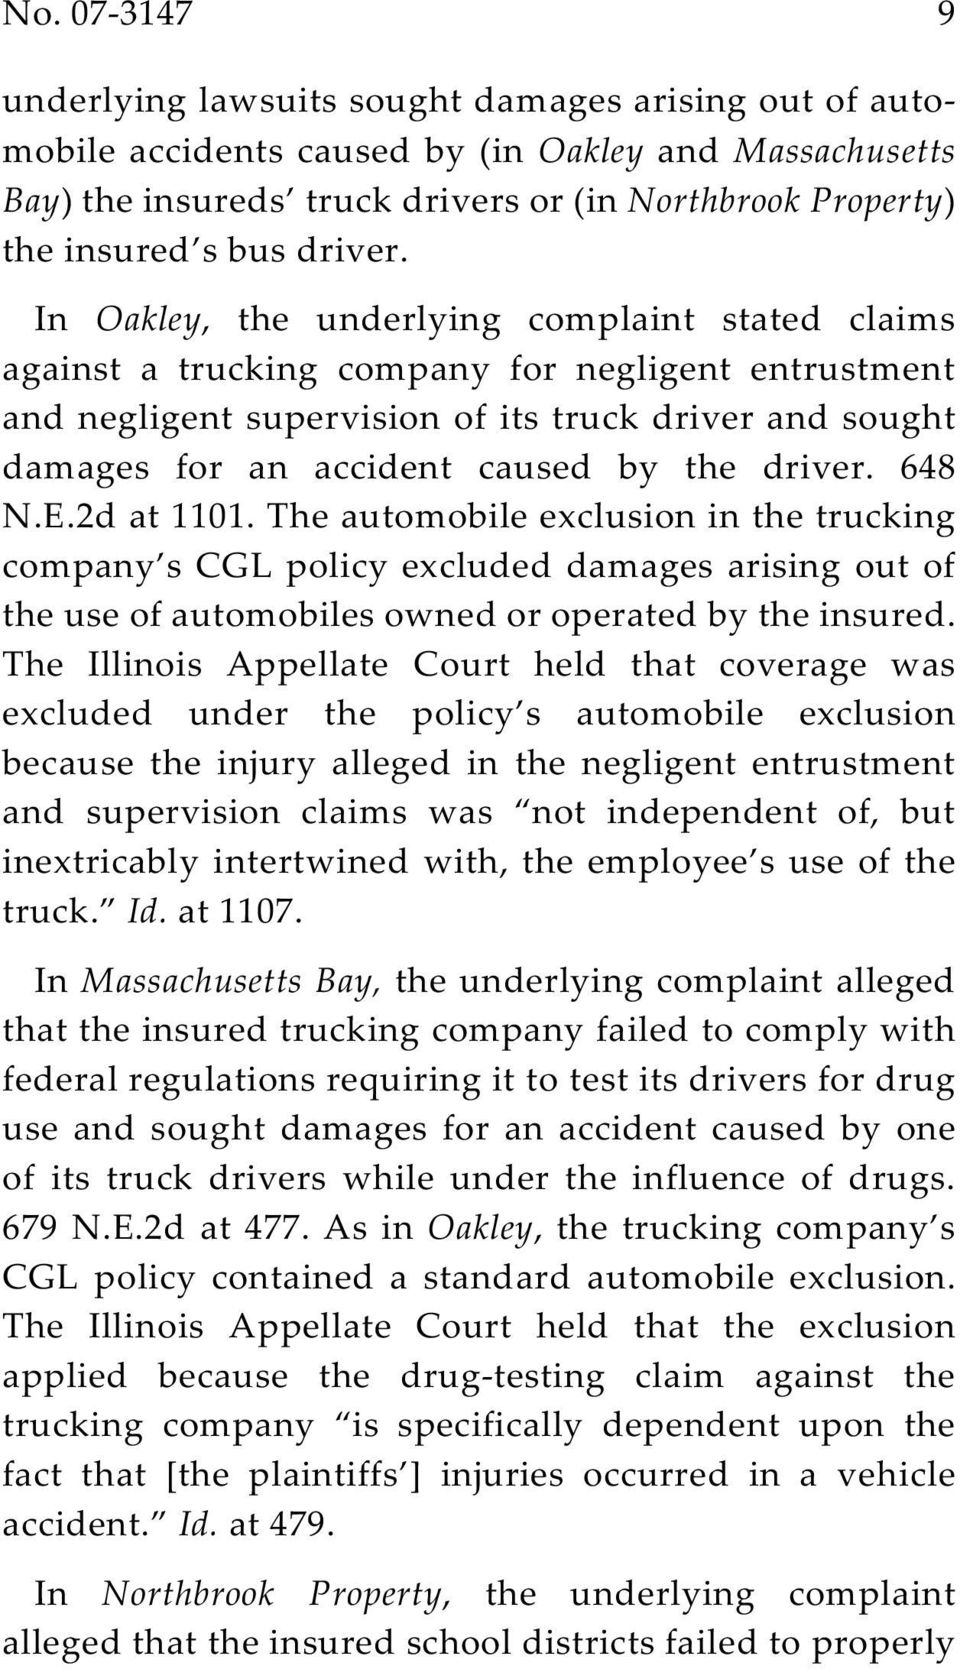 In Oakley, the underlying complaint stated claims against a trucking company for negligent entrustment and negligent supervision of its truck driver and sought damages for an accident caused by the